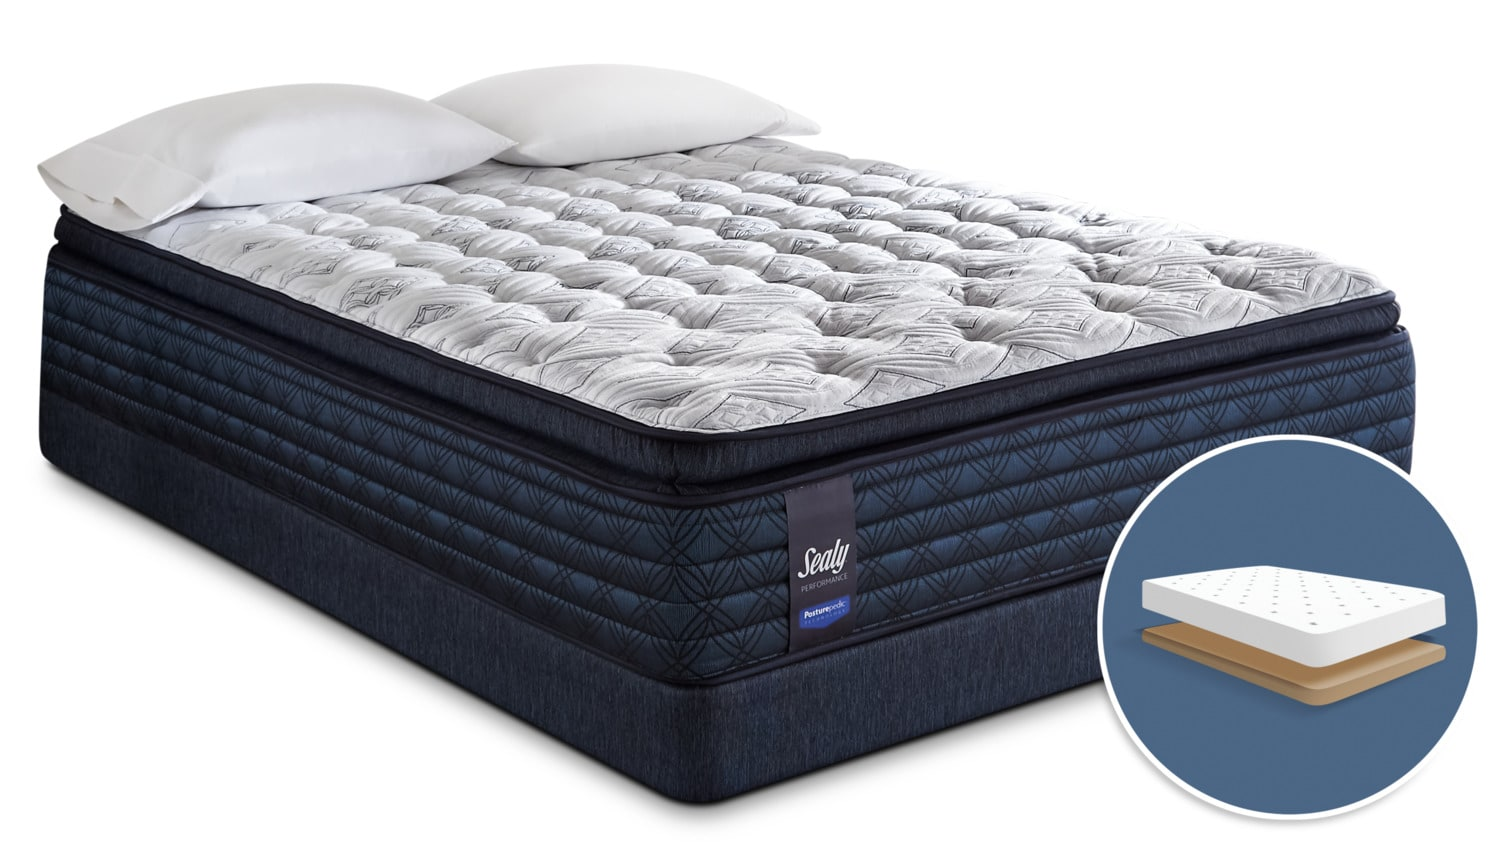 Mattresses and Bedding - Sealy Posturepedic Hillshire Pillow-Top Plush Low-Profile Full Mattress Set